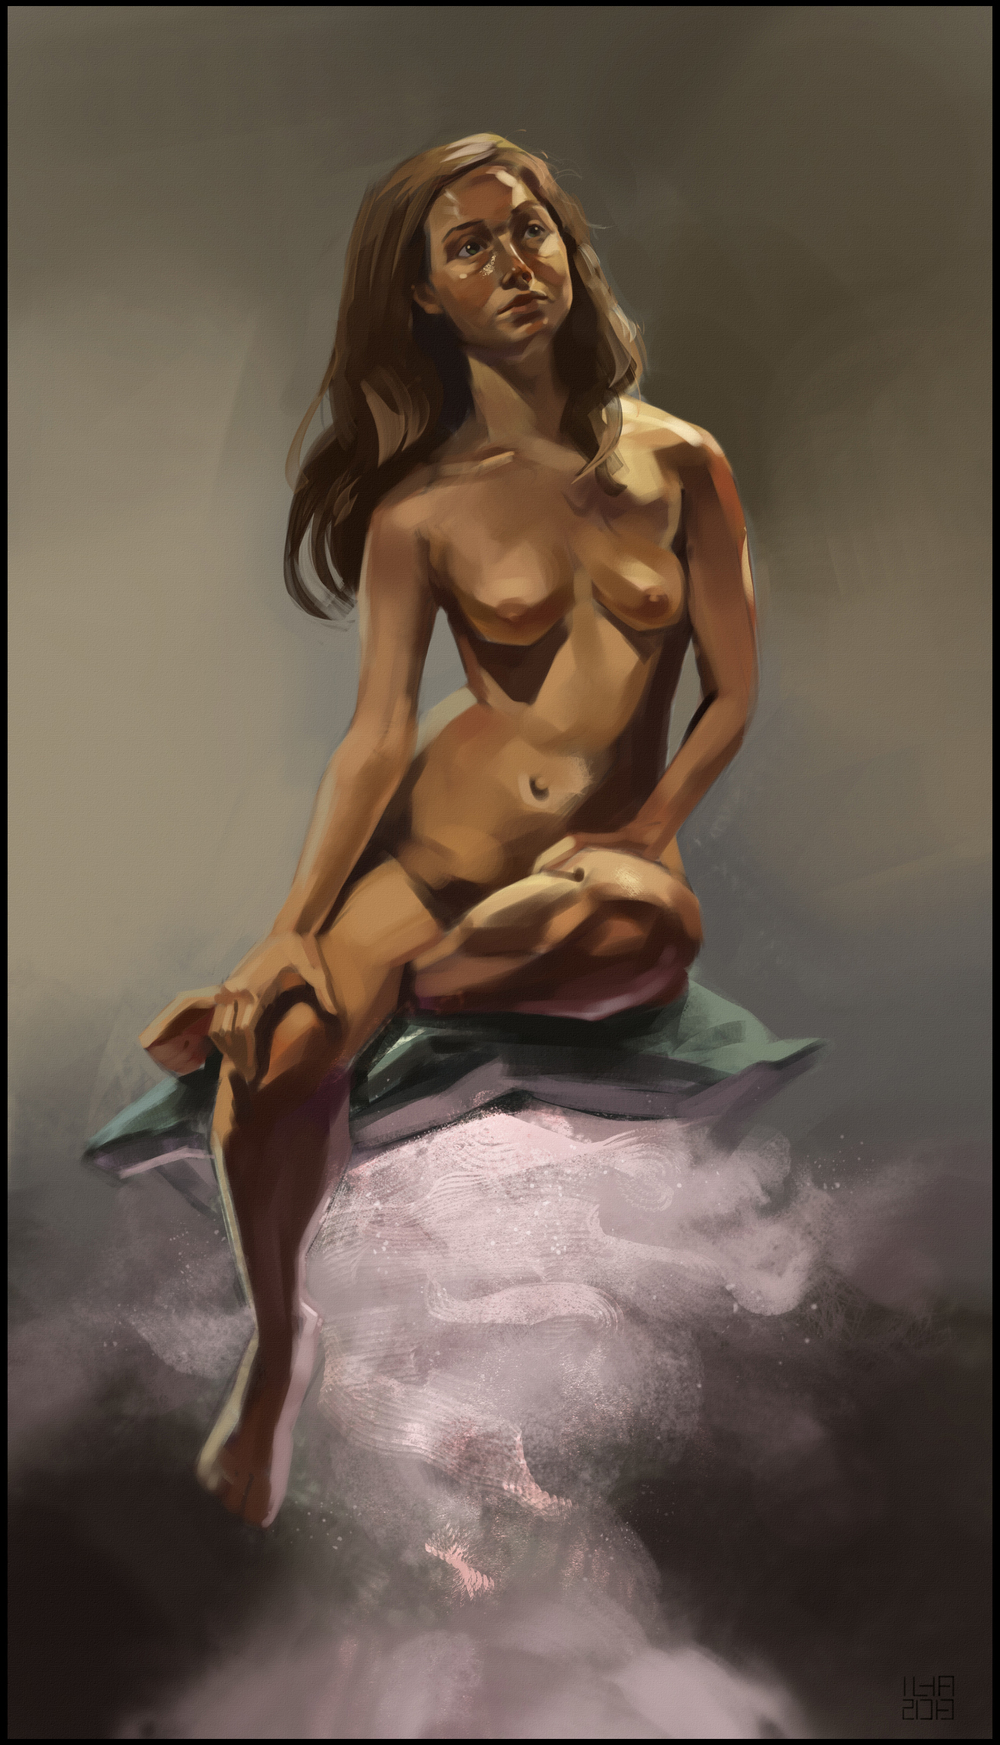 Lifedrawing_september8.jpg